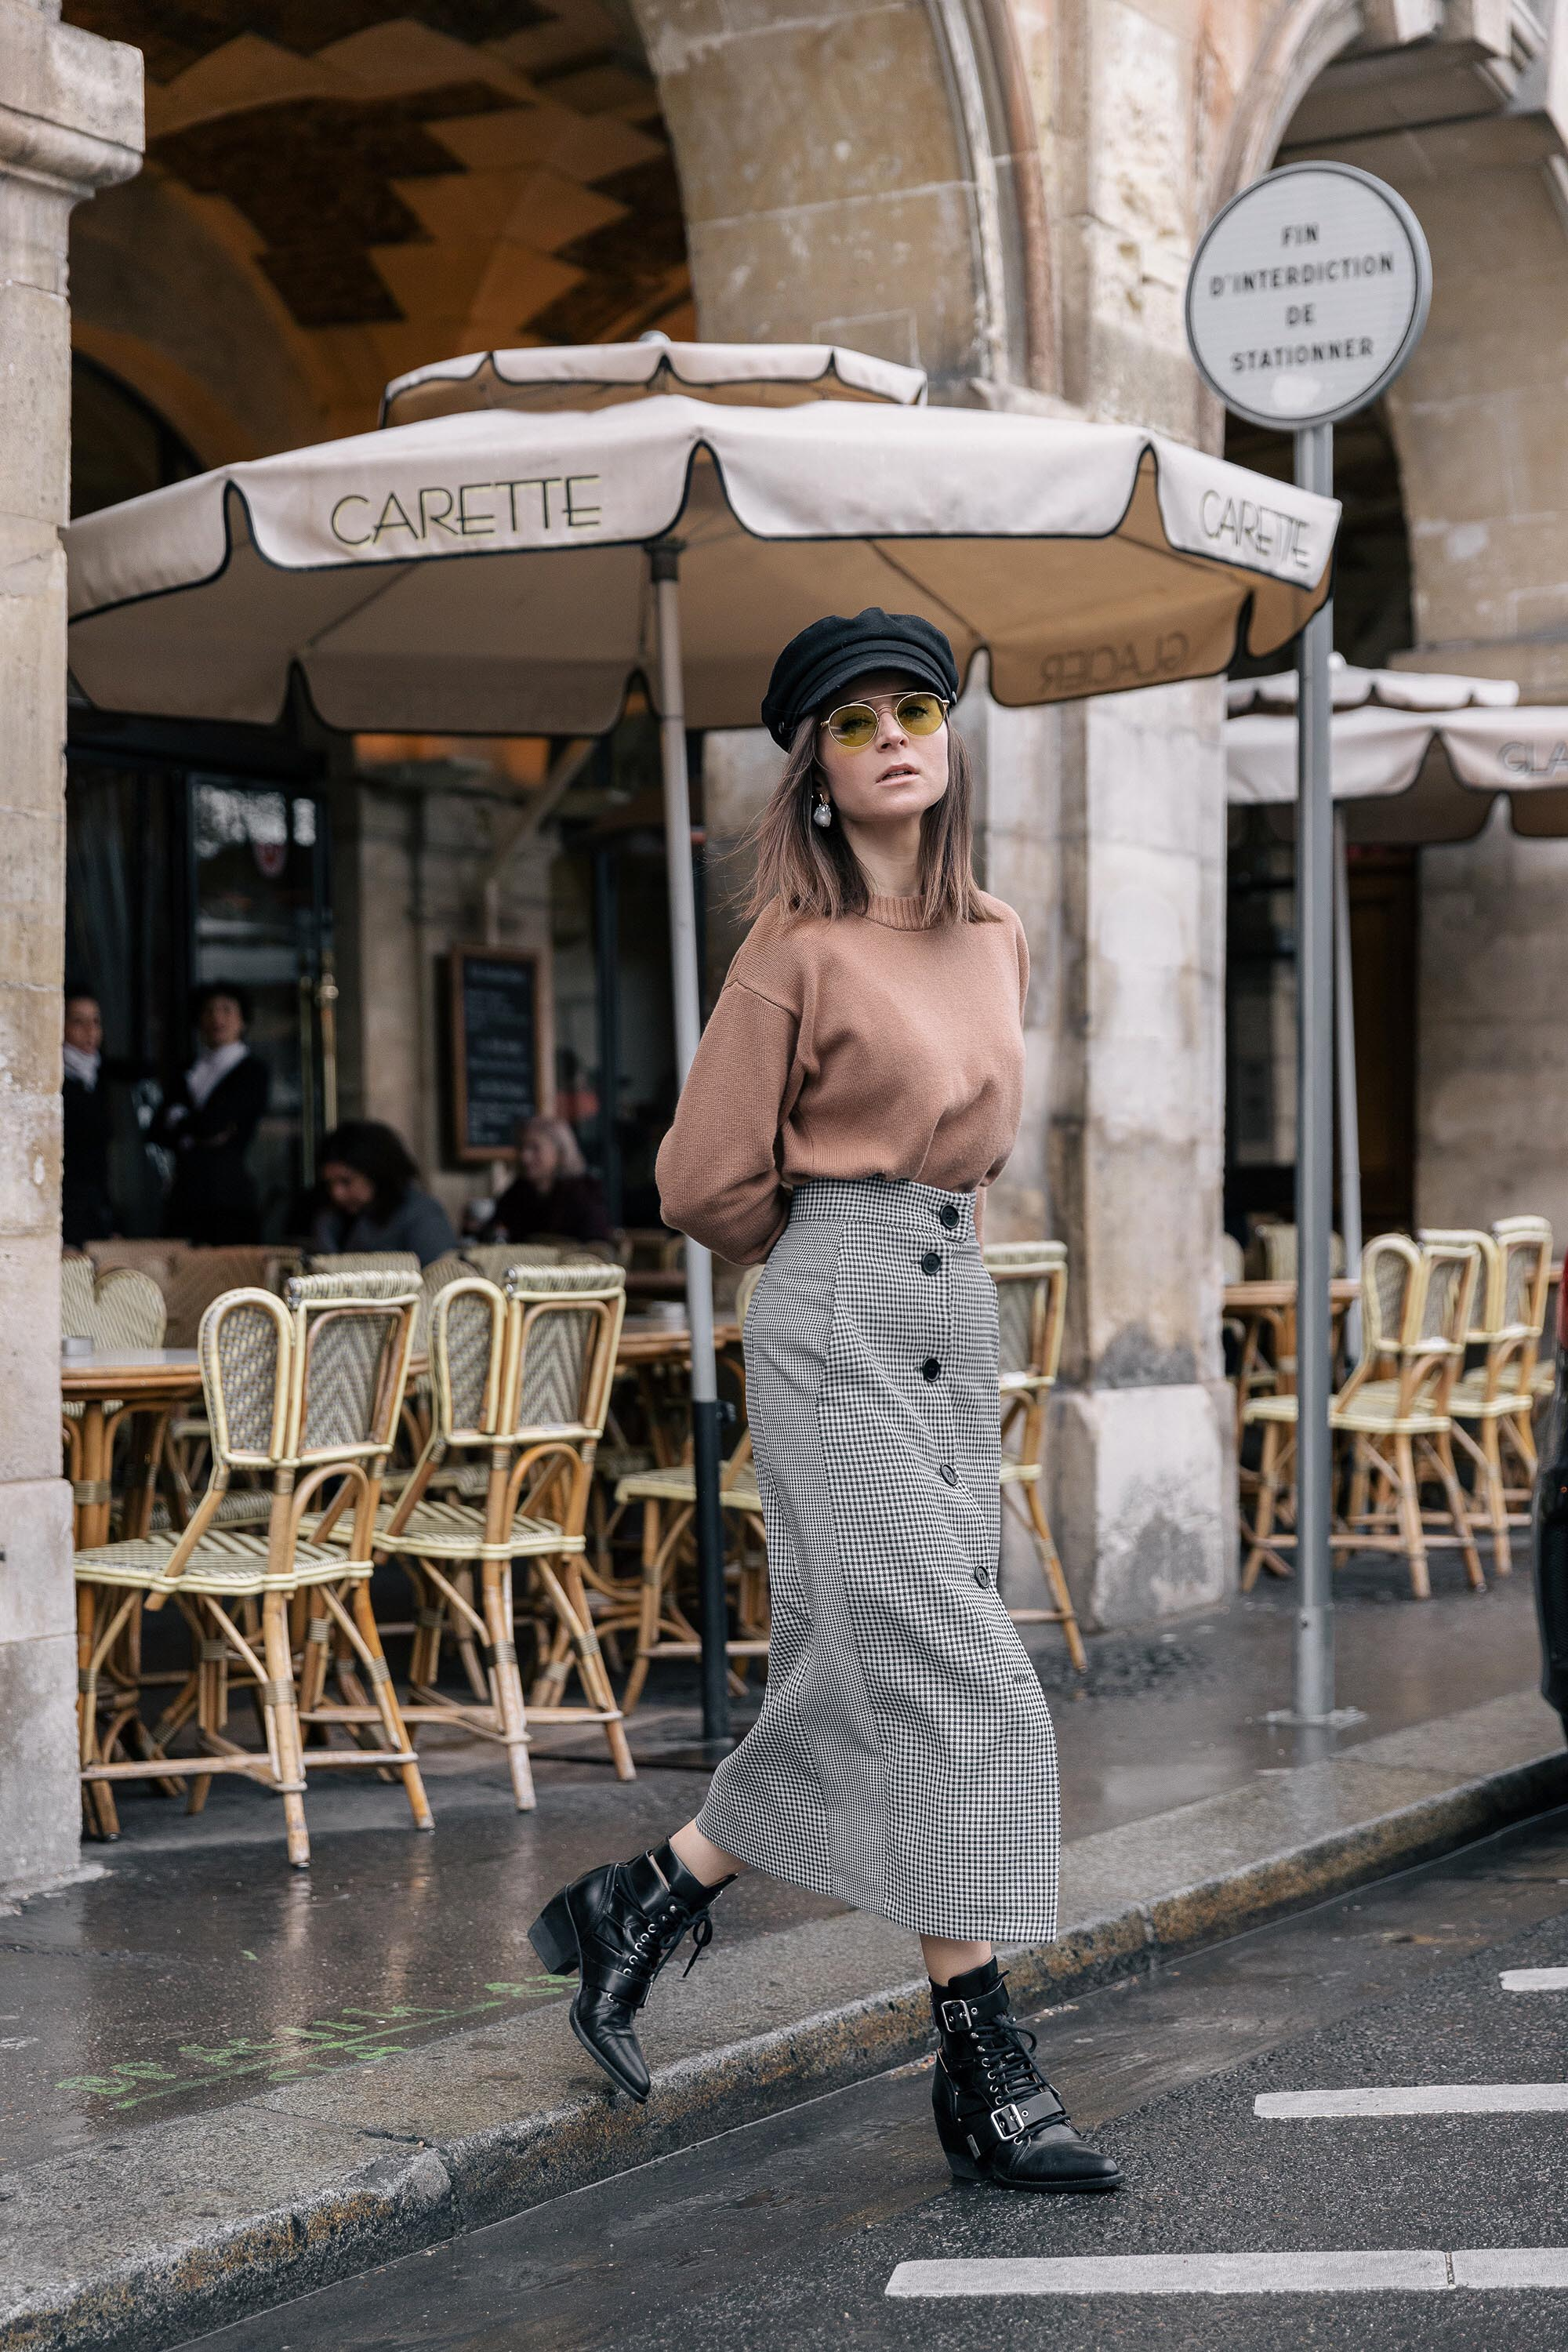 Manish Arora Best Street Style Paris Fashion Week Mars 2019 Julia Comil / French Fashion Blogger in Los Angeles Outfit for PFW Fall Winter 2019 show - checked Skirt Tara Jarmon, brown sweater Tara Jarmon, fisherman cap Etsy, boots Rylee Chloe, sunglasses alhem